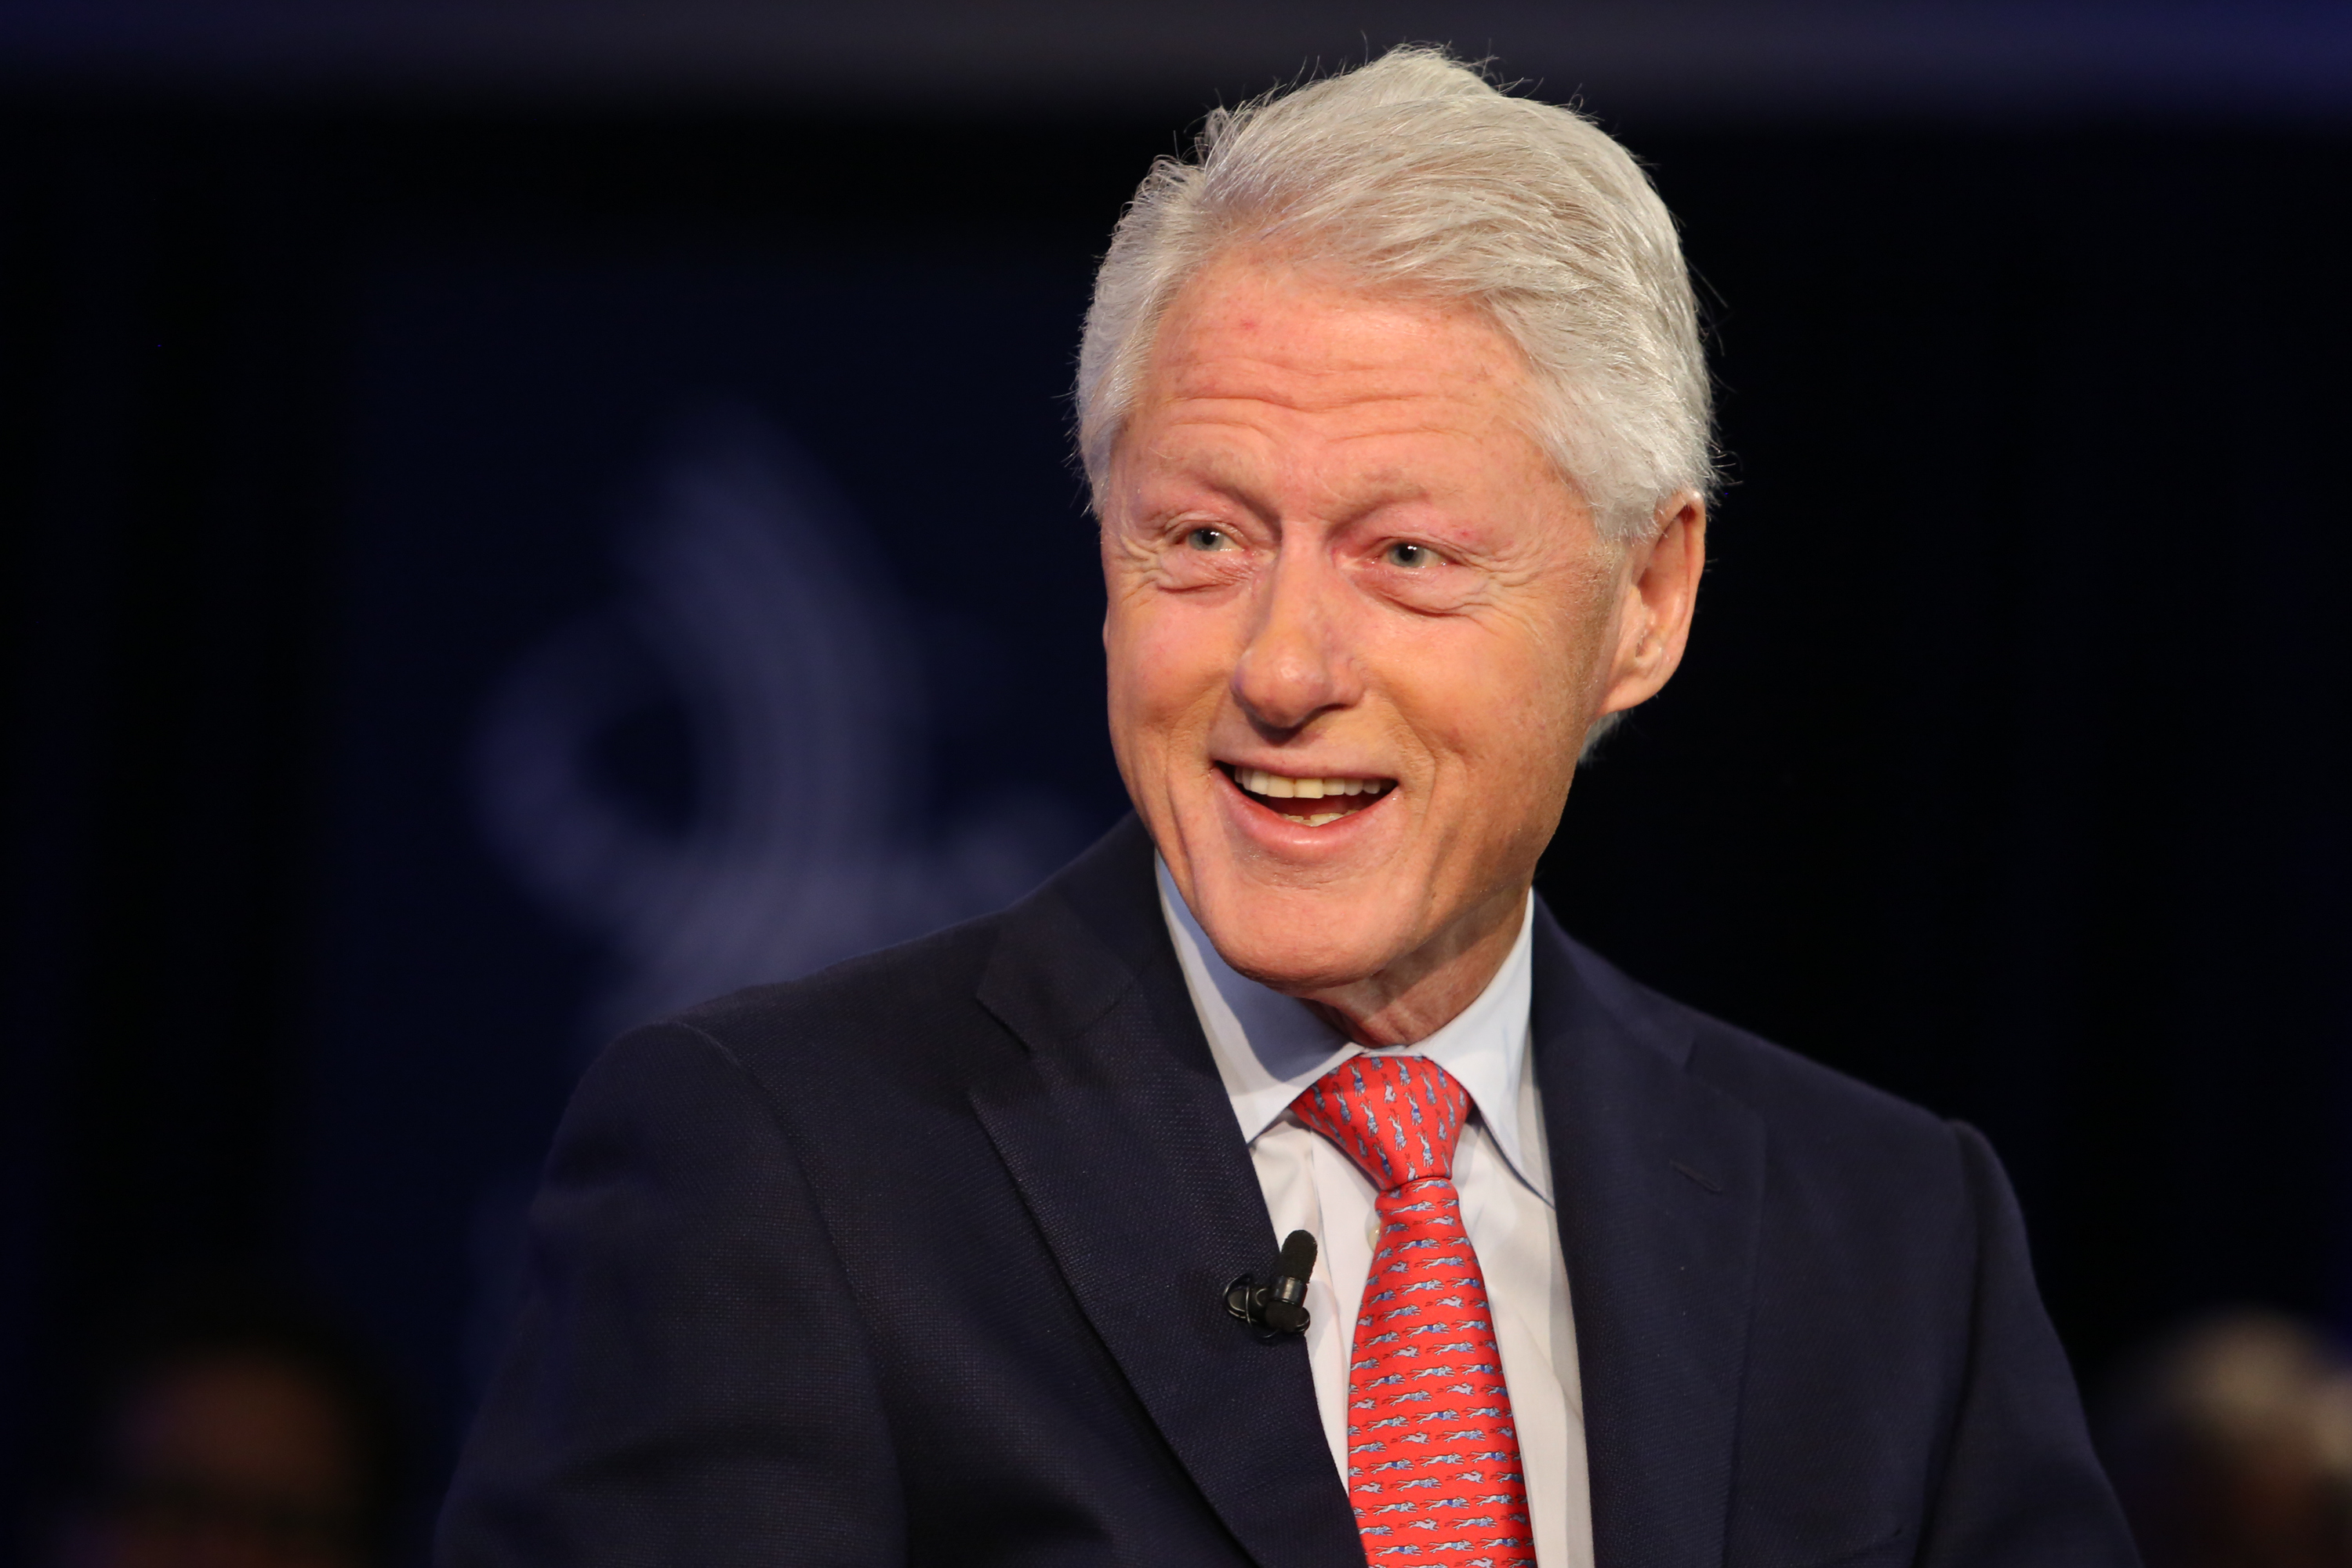 Bill Clinton speaks at an interview, during the Clinton Global Initiative Annual Meeting, in New York City on Sept. 28, 2015.